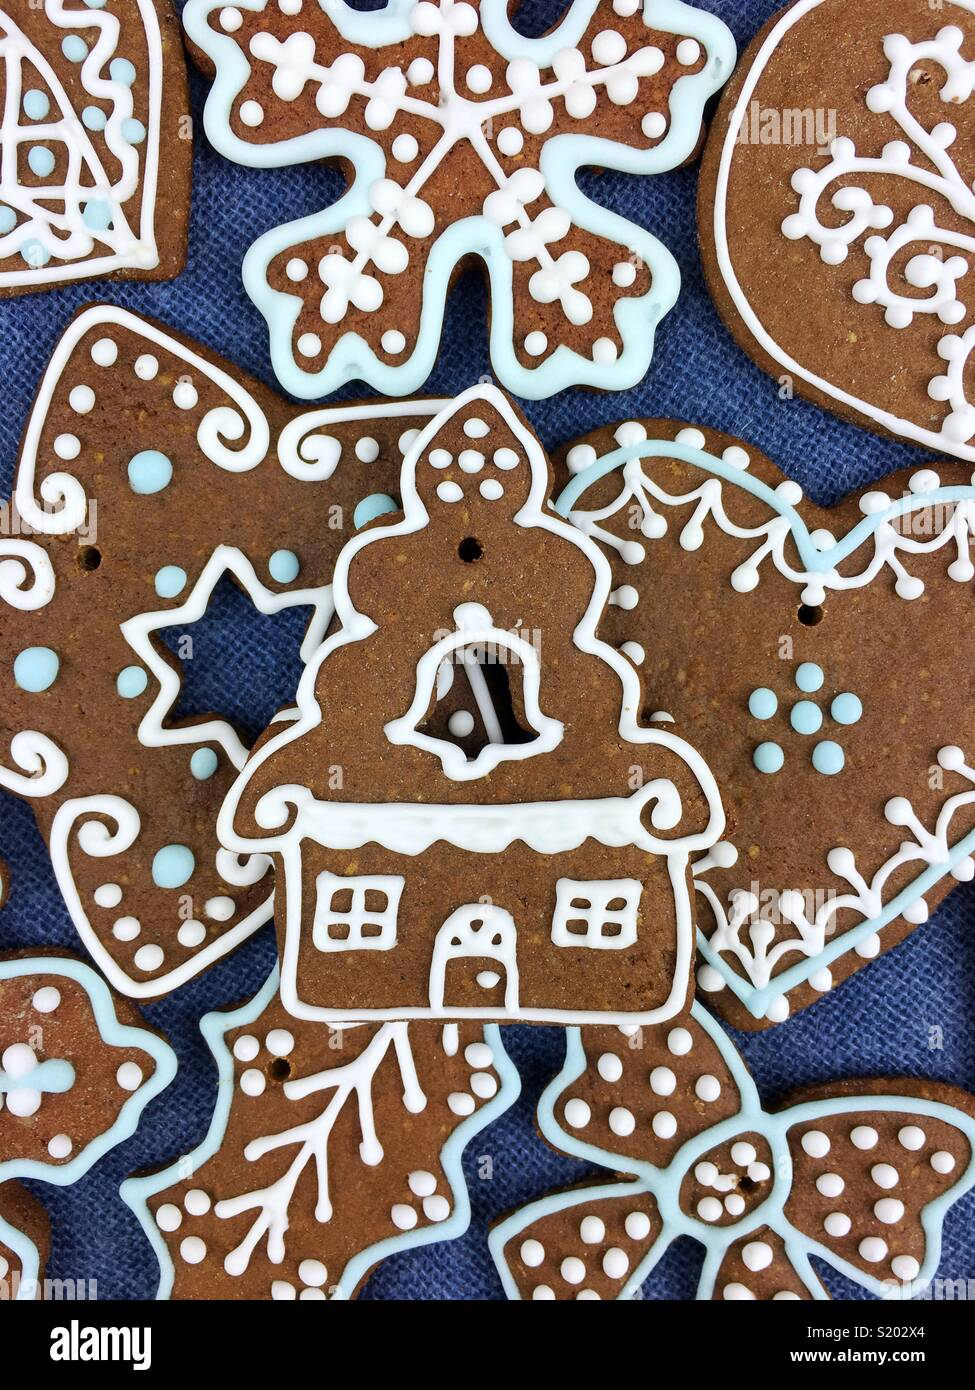 Christmas gingerbread cookies decoration - Stock Image